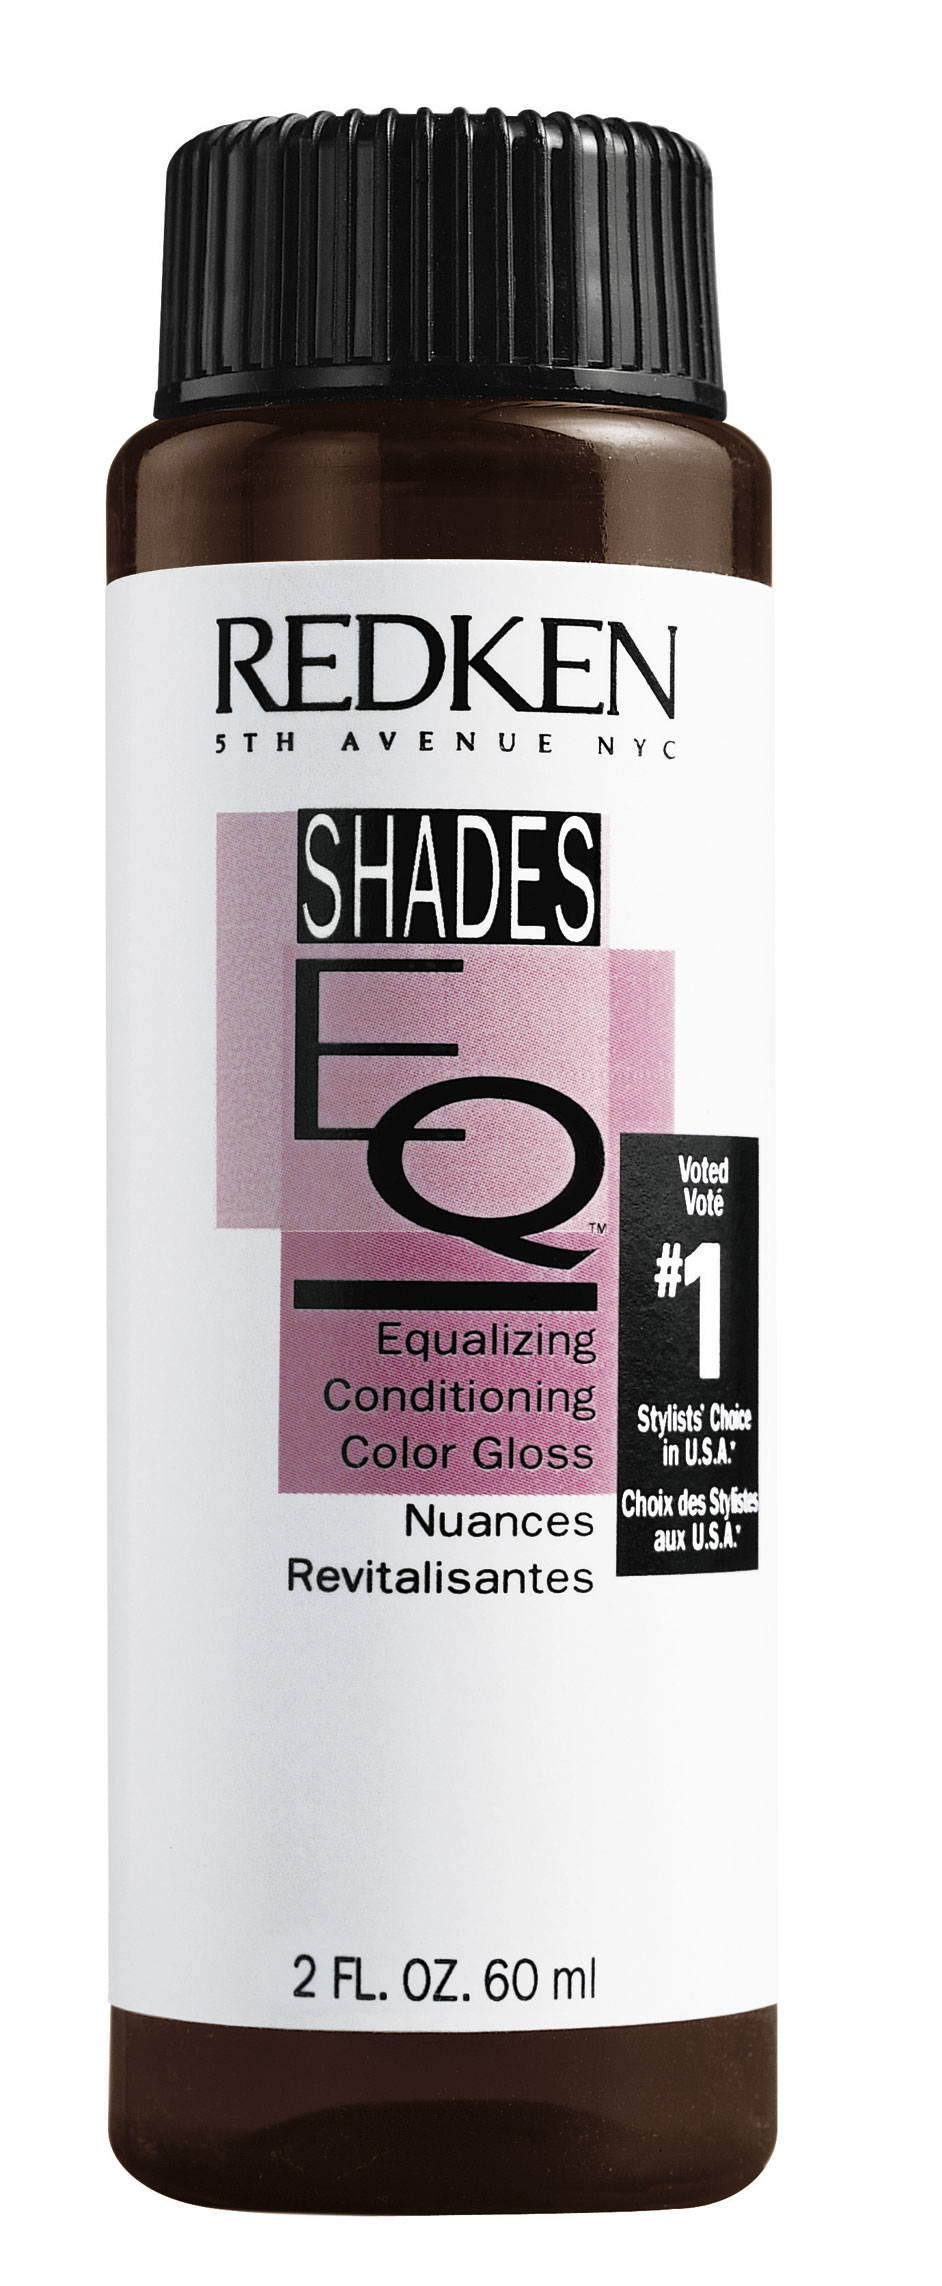 Redken Shades EQ